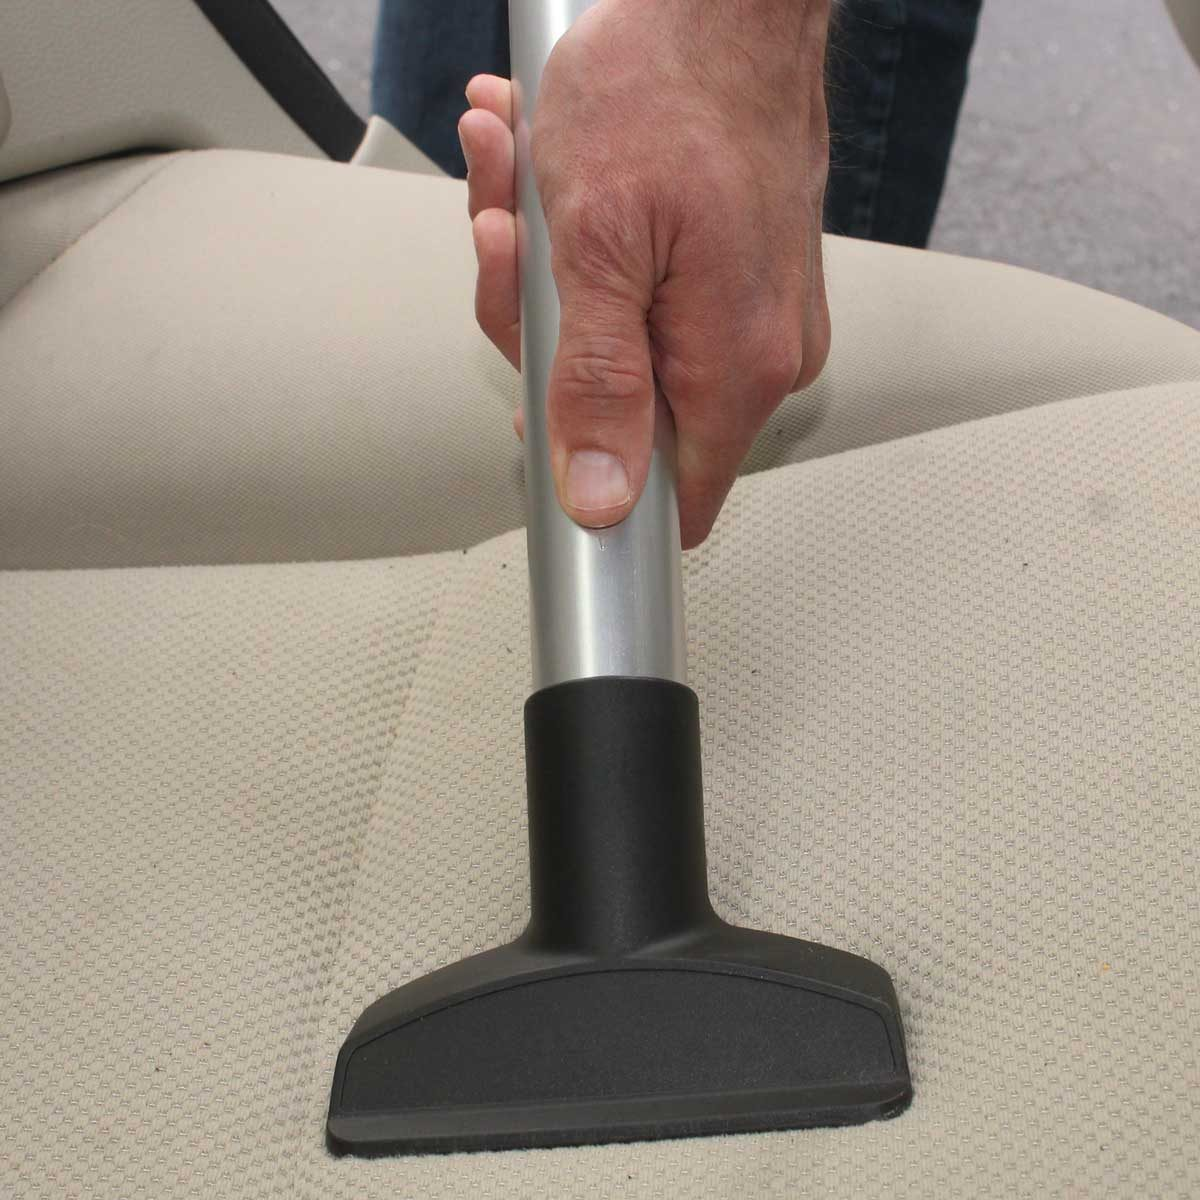 Vacuuming a cloth car seat